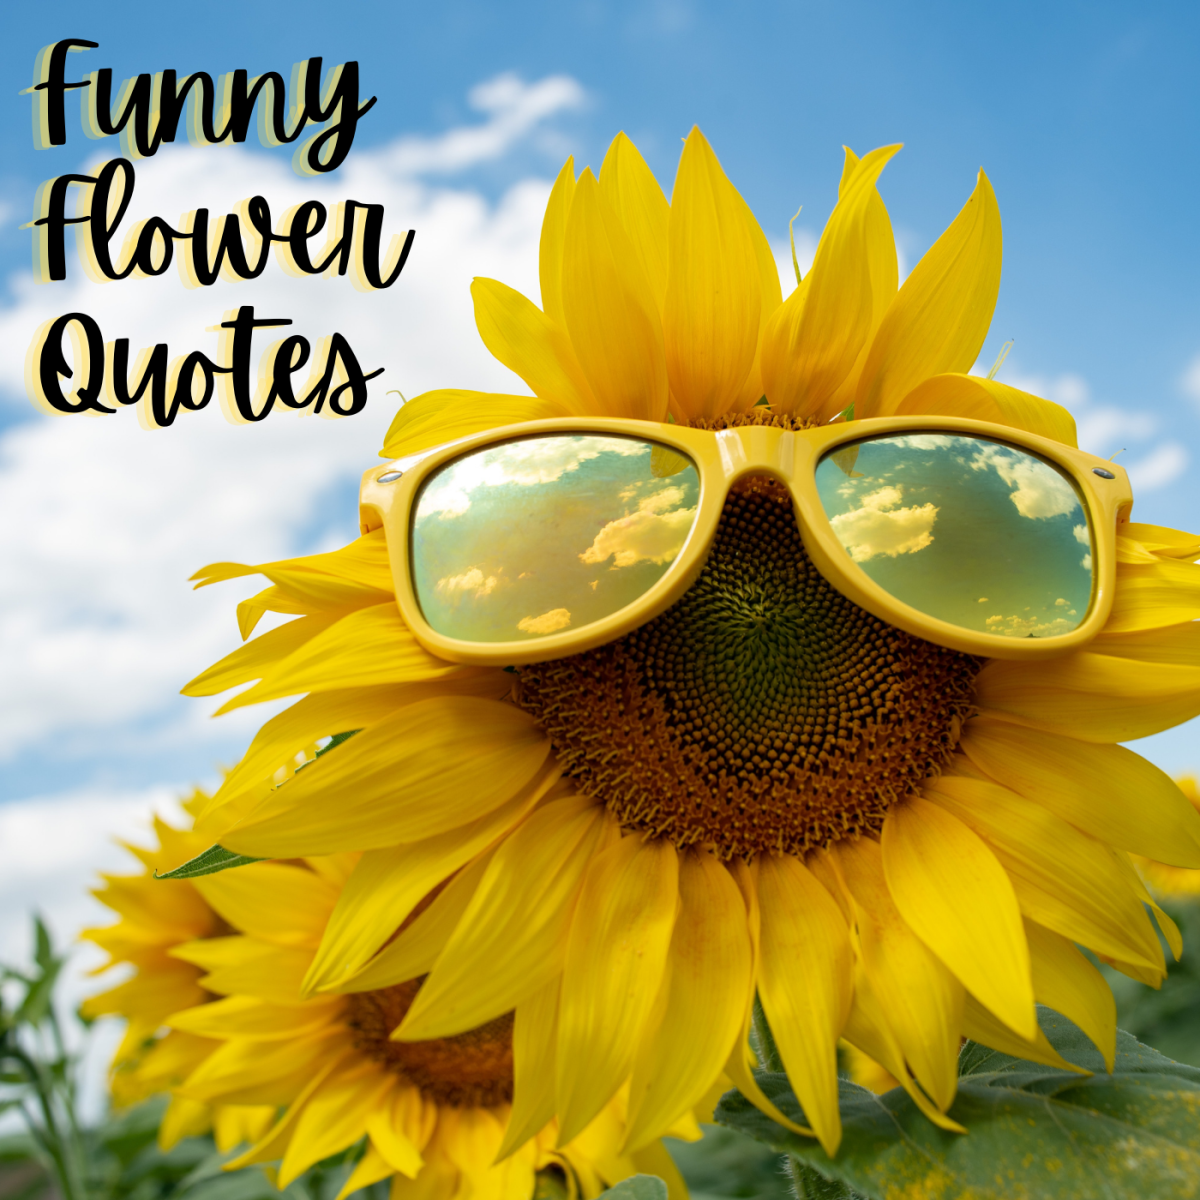 Funny Flower Quotes and Sayings to Include With a Bouquet